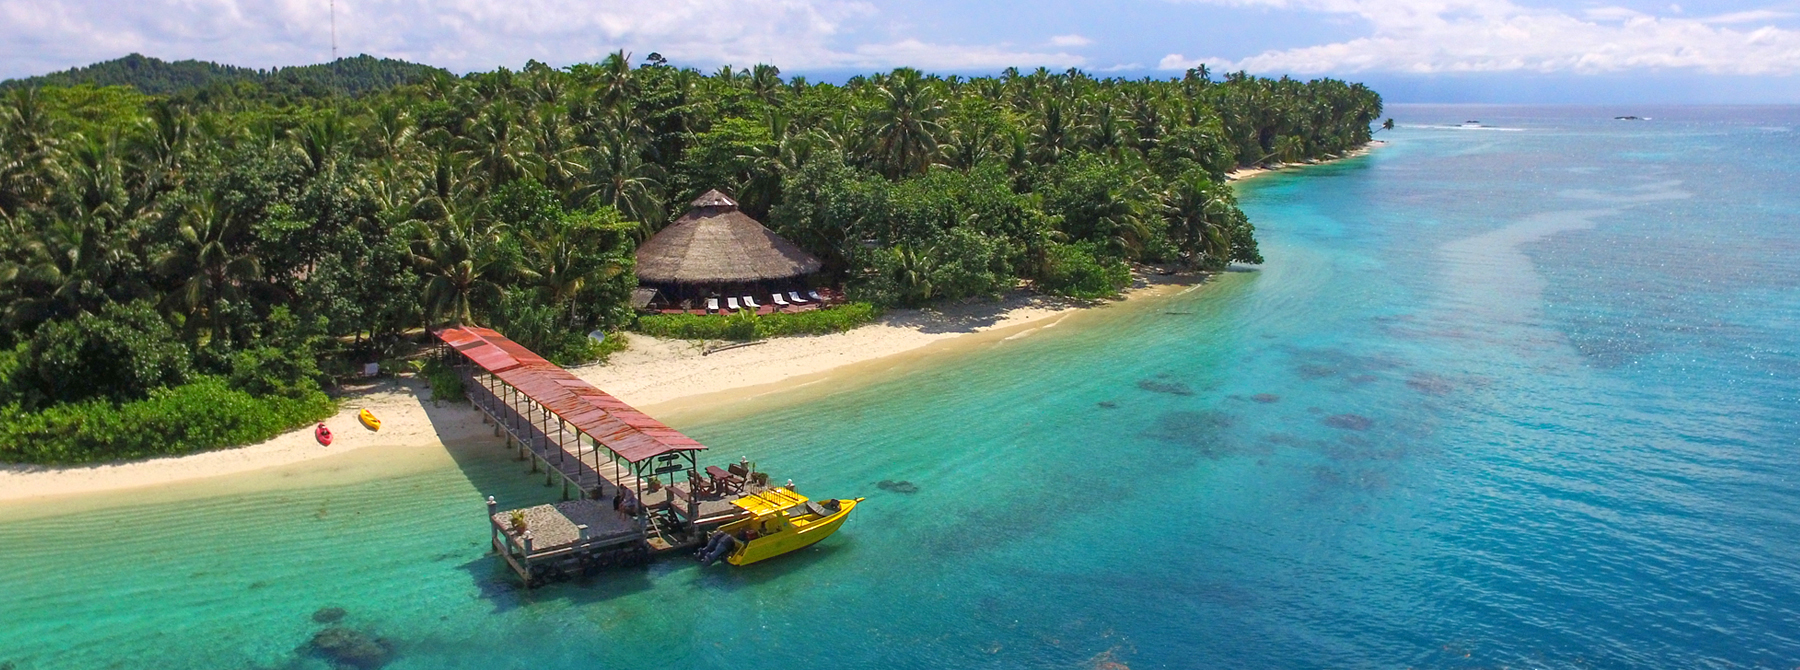 d9226-Mentawai-Islands-13-2